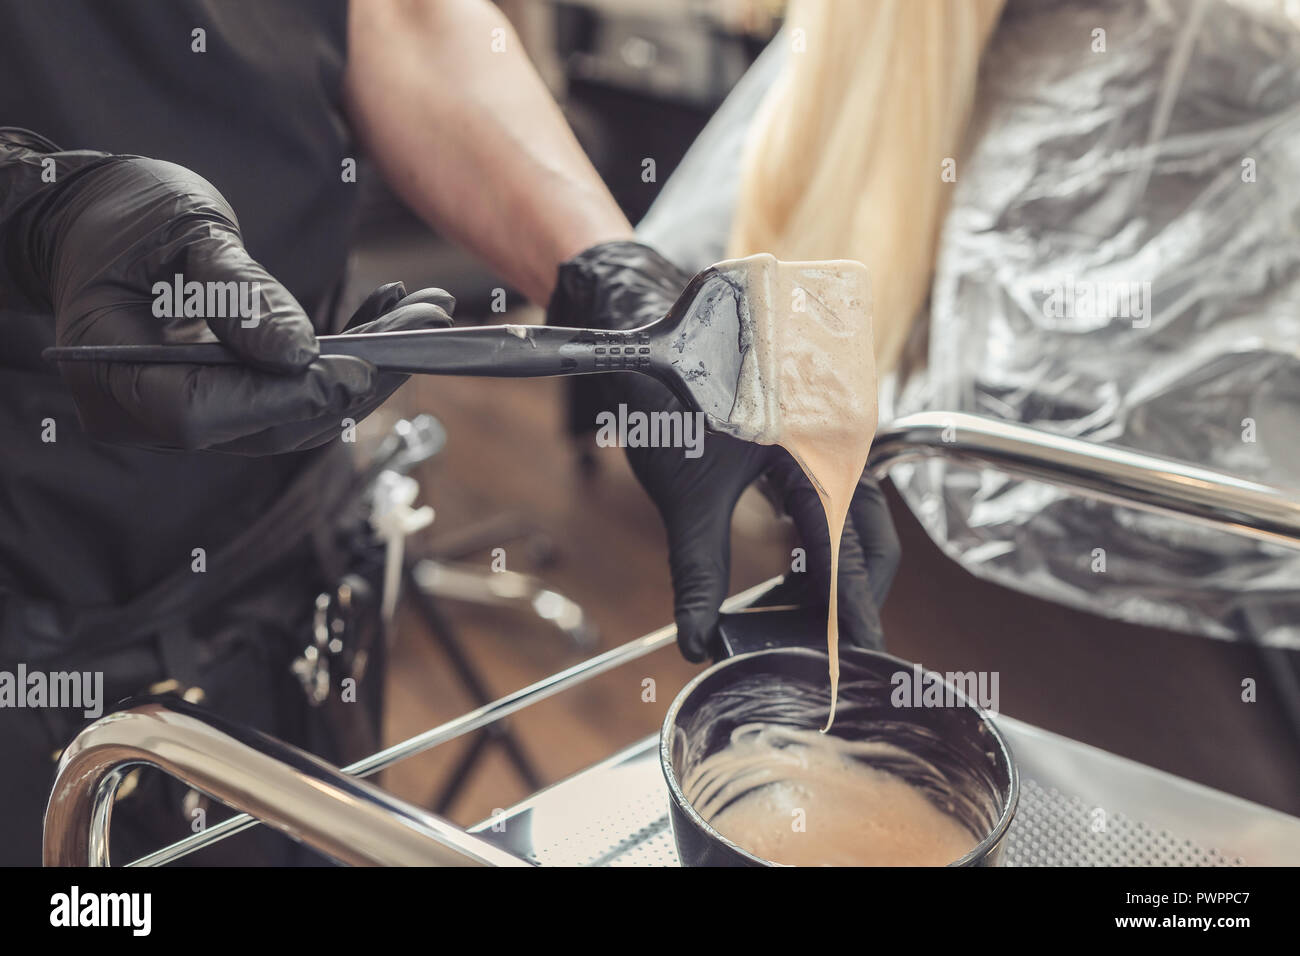 Stylist preparing a hair dye in a container, hairdresser salon concept - Stock Image